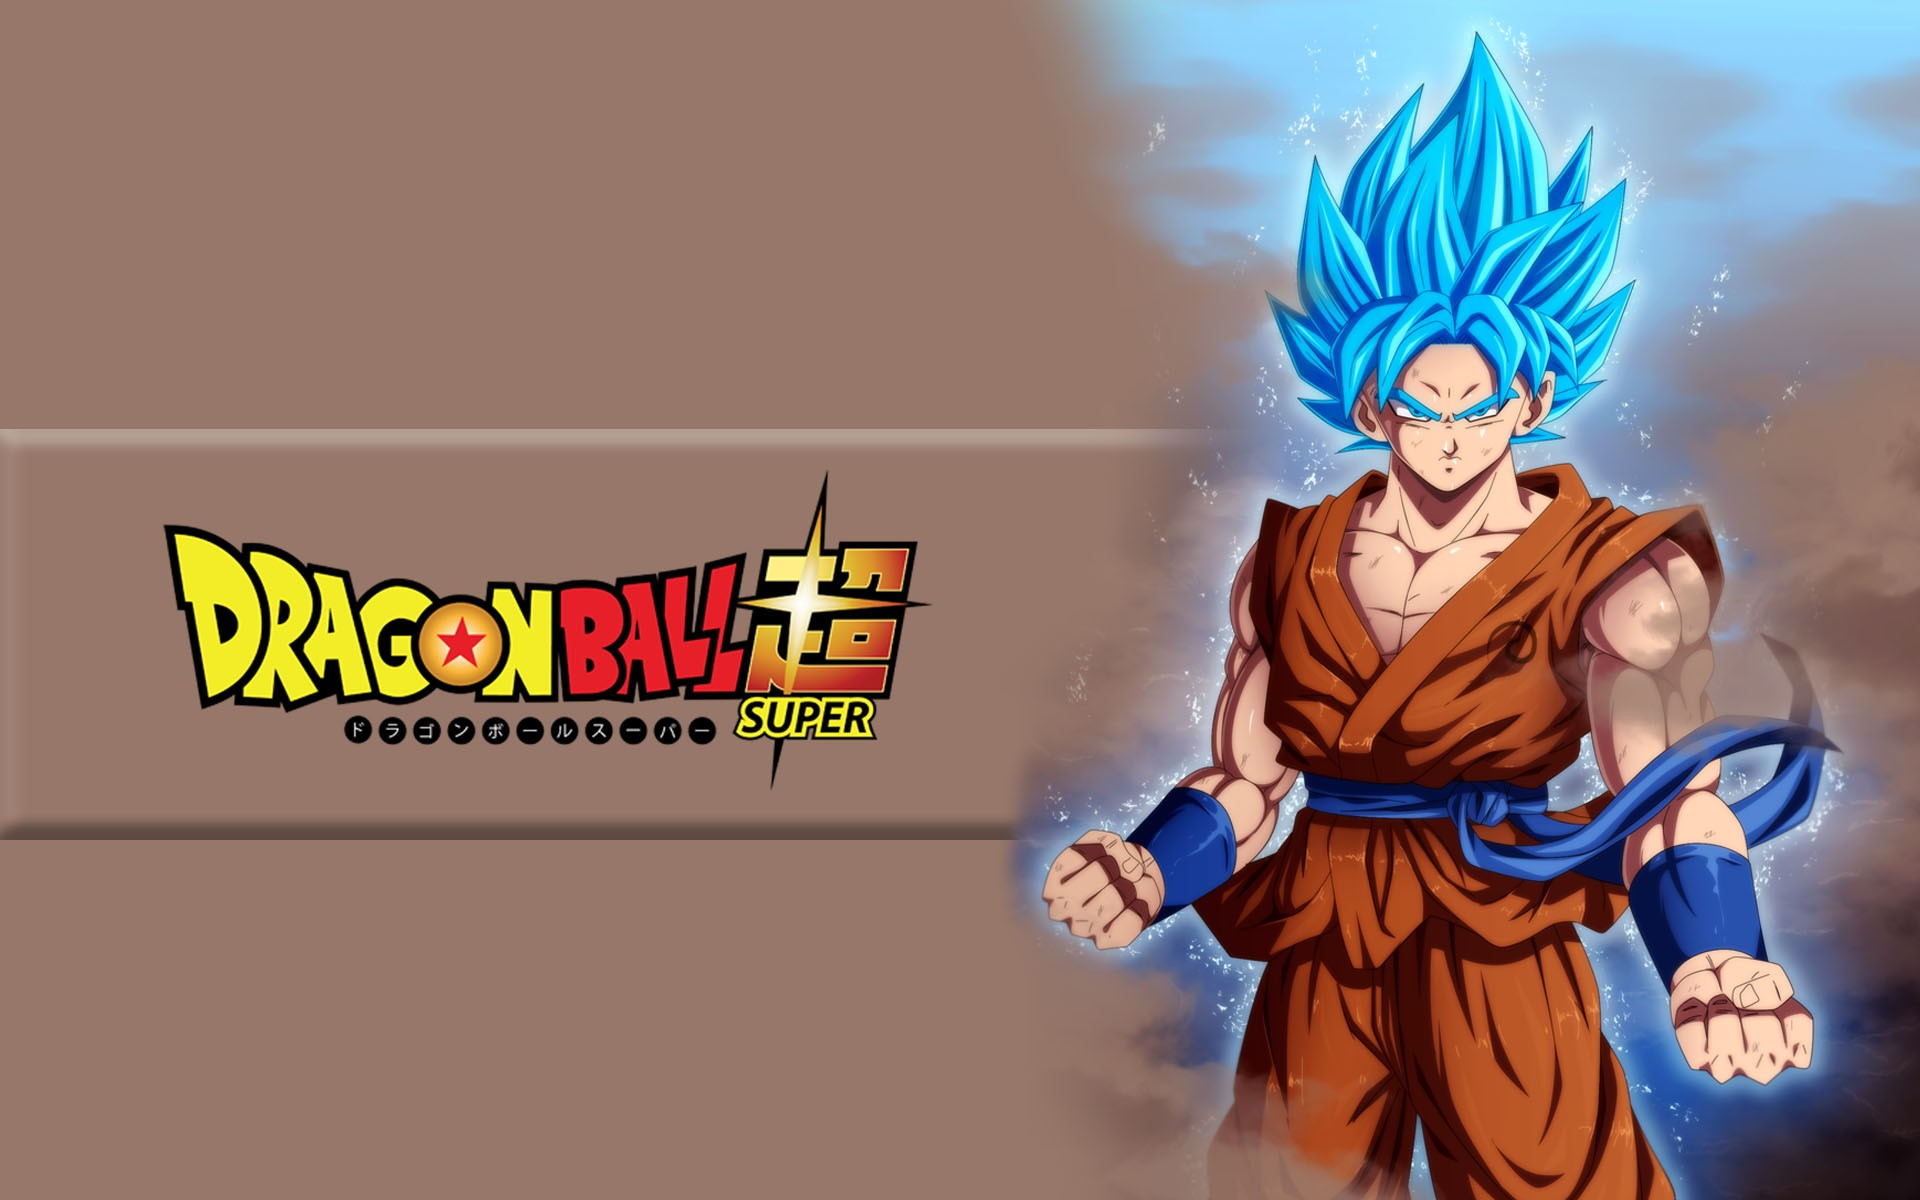 Dragon Ball Super Wallpaper Hd Free Download The Galleries Of Hd